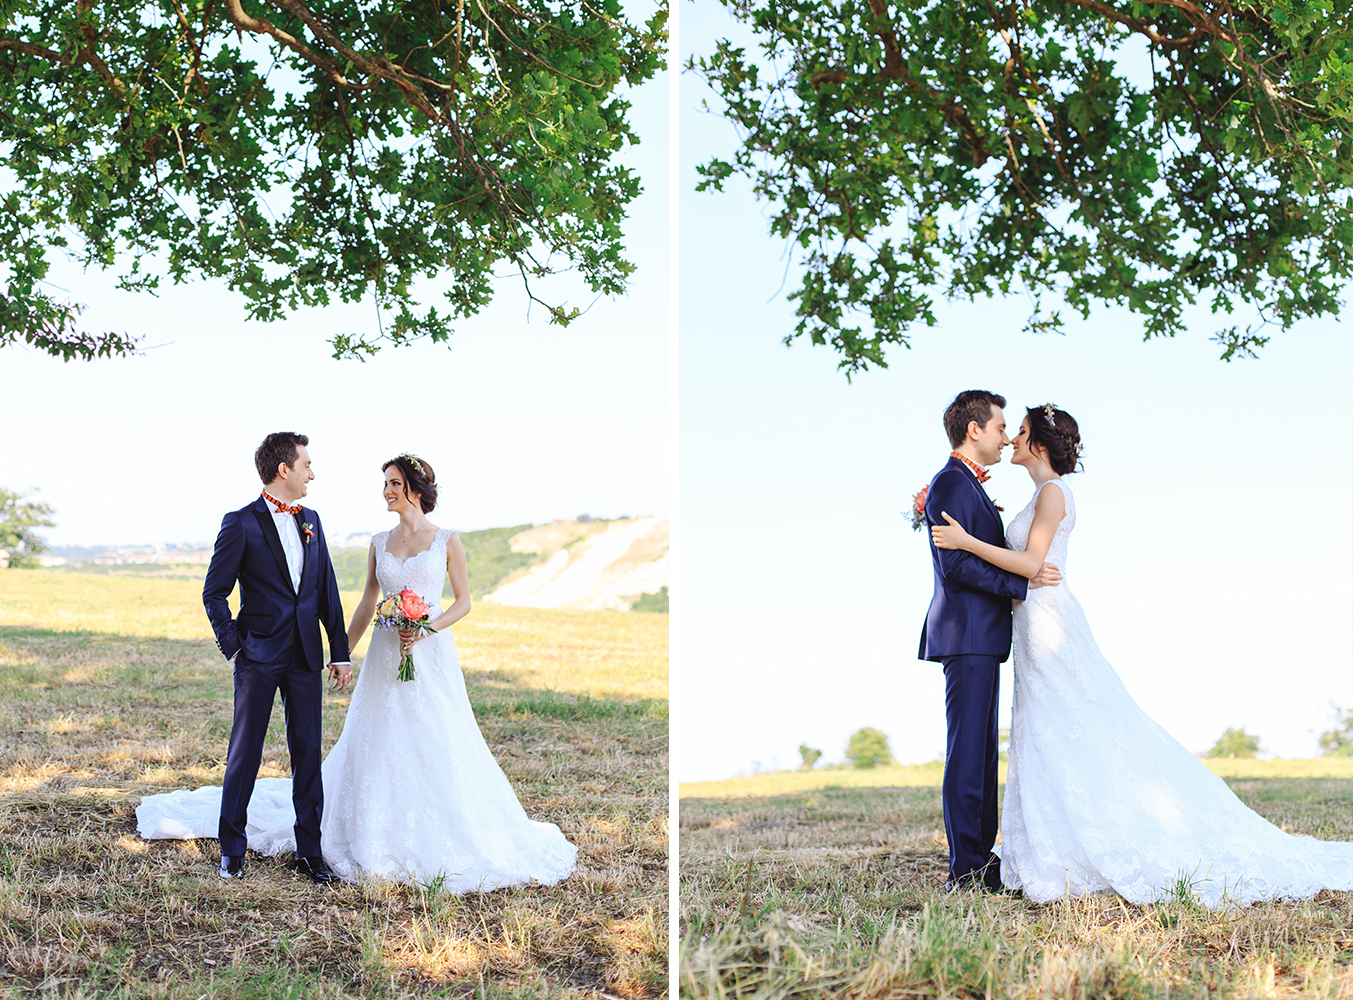 Based in Istanbul, Wedding photographer for all destinations.